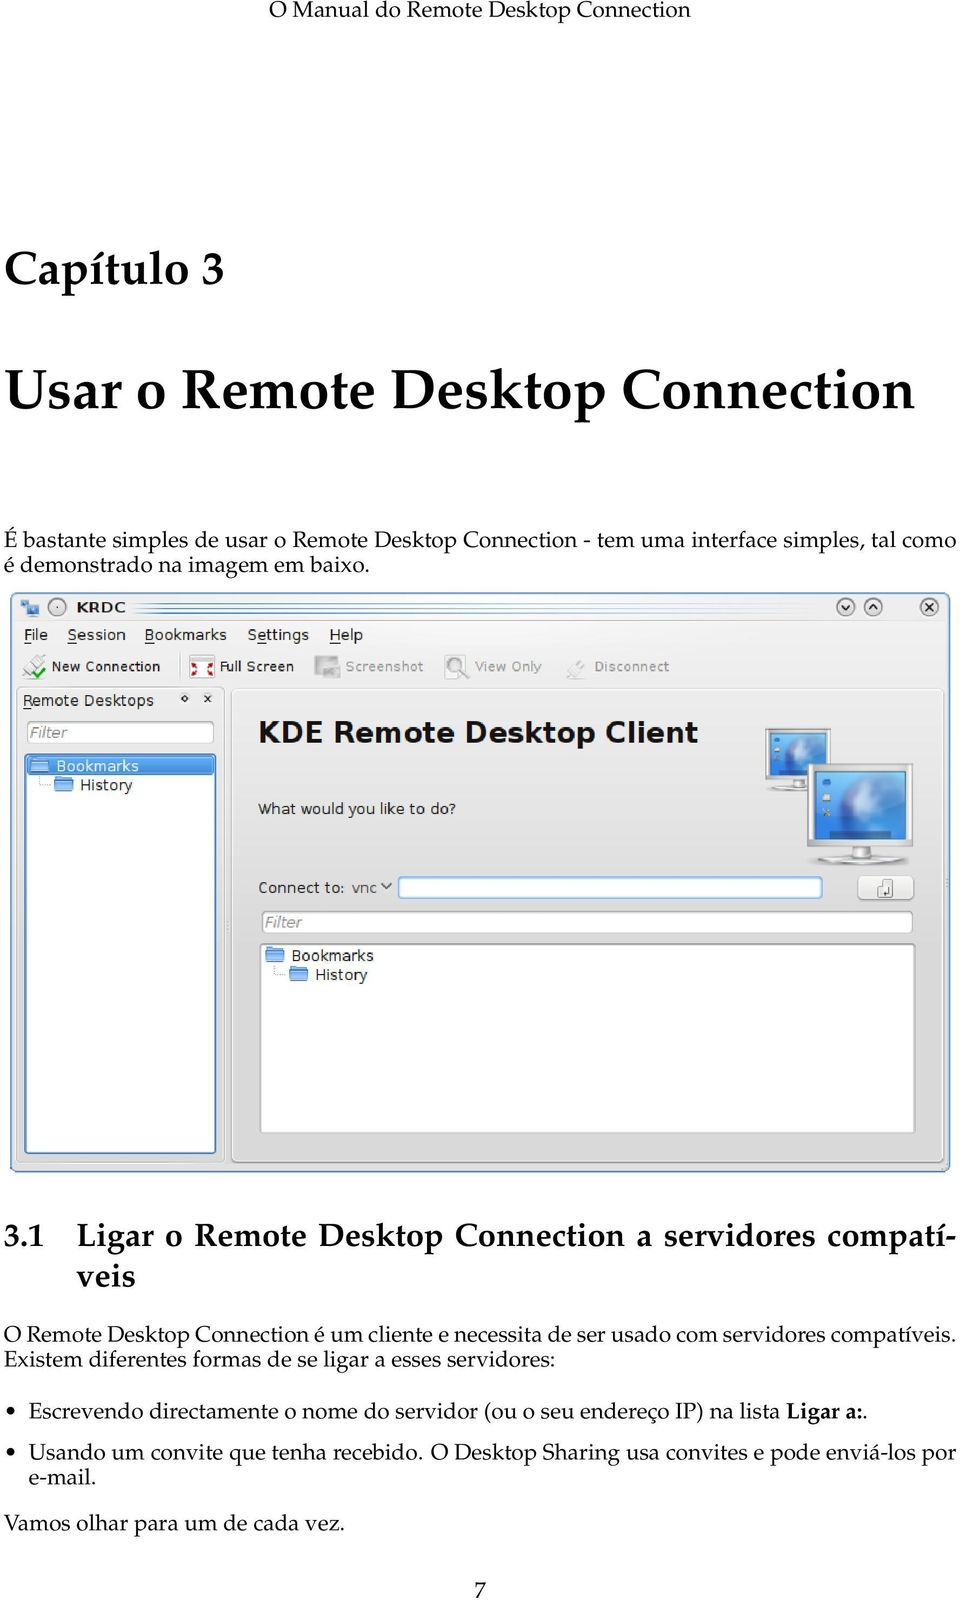 1 Ligar o Remote Desktop Connection a servidores compatíveis O Remote Desktop Connection é um cliente e necessita de ser usado com servidores